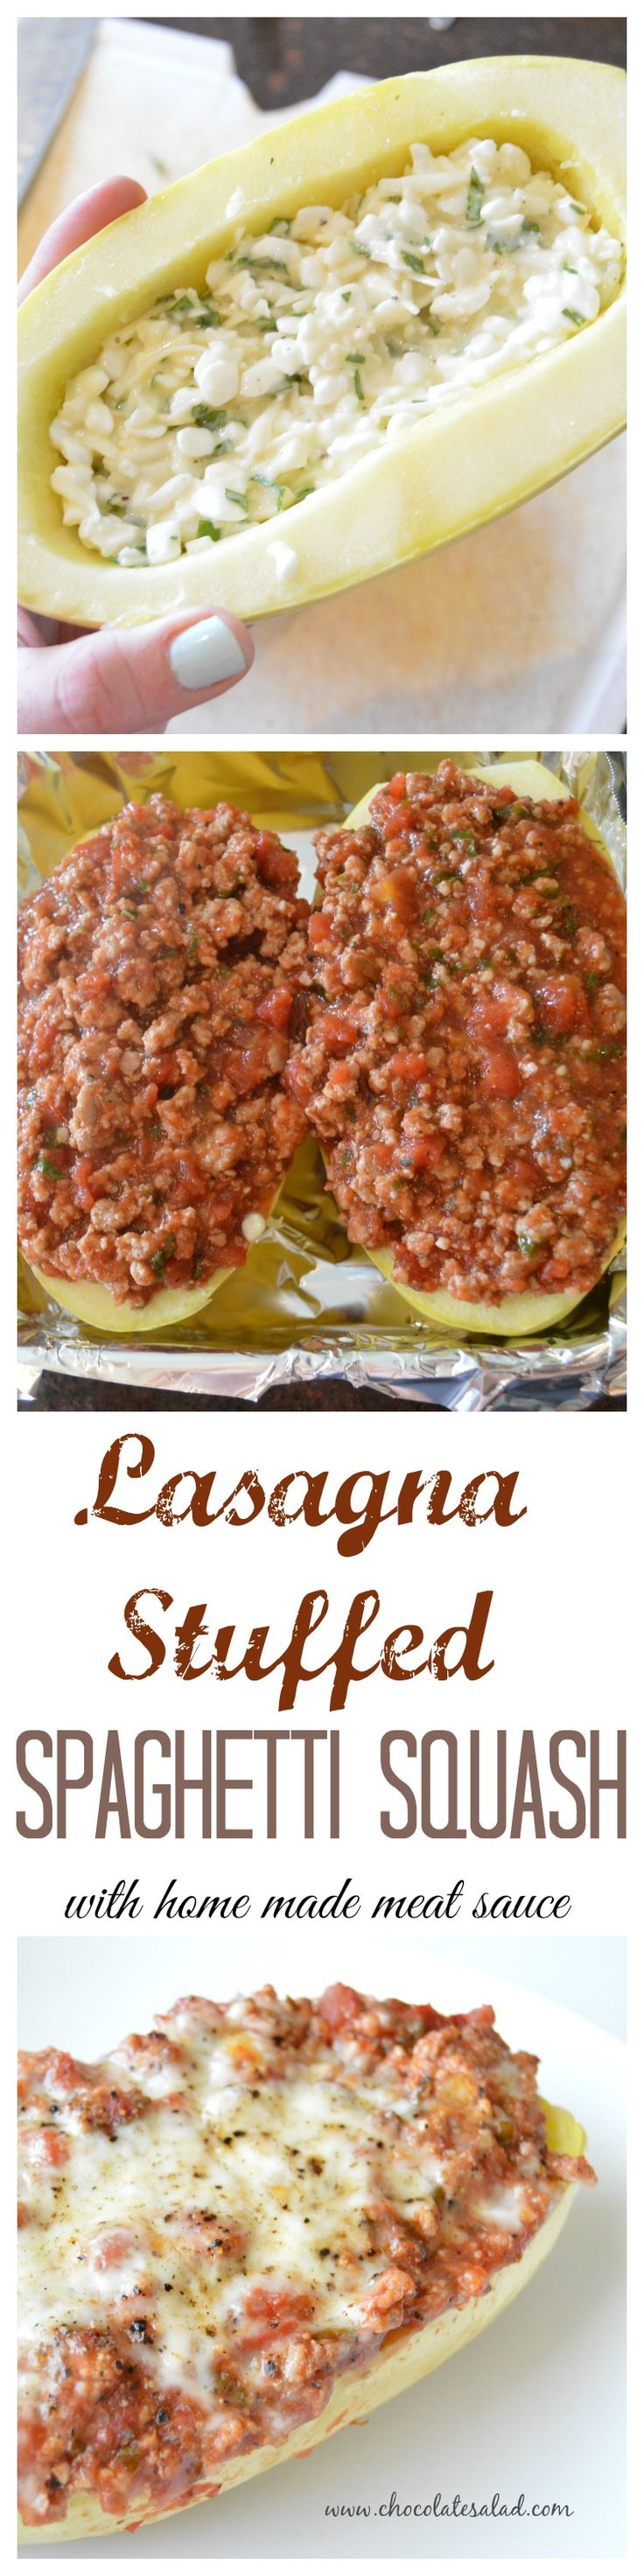 A gluten free and low carb alternative to traditional lasagna! Perfect for the harvest season. Lasagna Stuffed Spaghetti Squash on chocolatesalad.com // holy mother of delicious dinner!!! I switched out the cottage cheese for ricotta and ground meat for turkey sausage ... AMAZING!! Cook-time depends on size of your squash